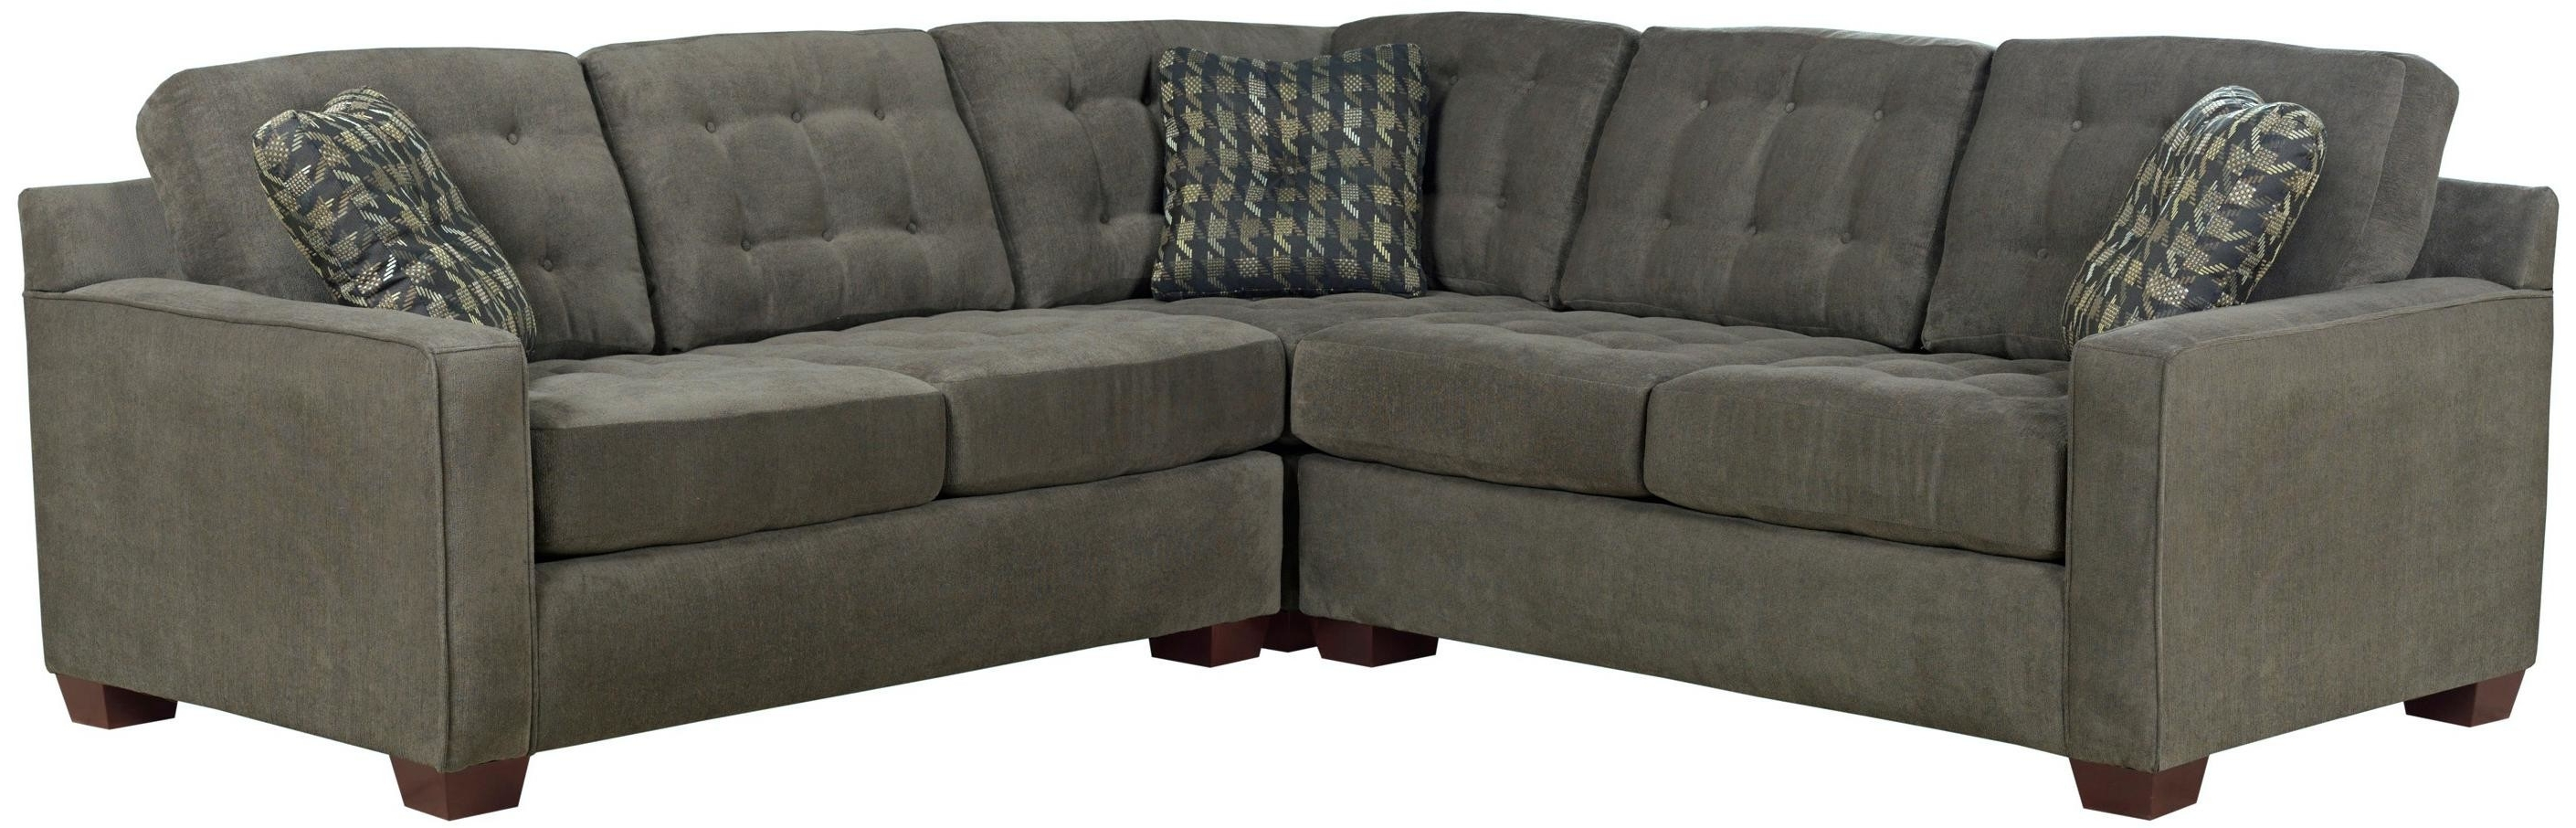 Homemakers Furniture Des Moines Iowa Throughout Most Recent Homemakers Sectional Sofas (View 9 of 20)